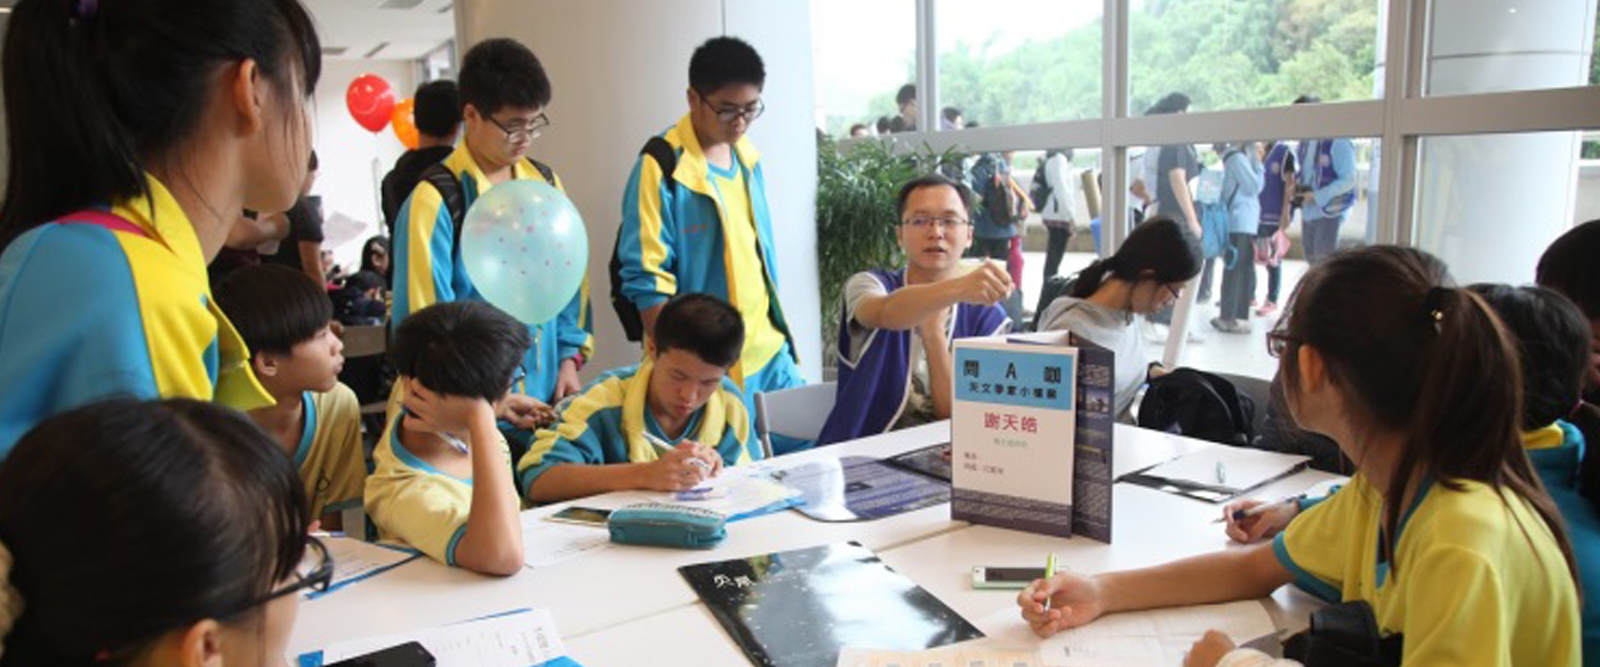 Taiwanese children celebrate the birthday of our partners!